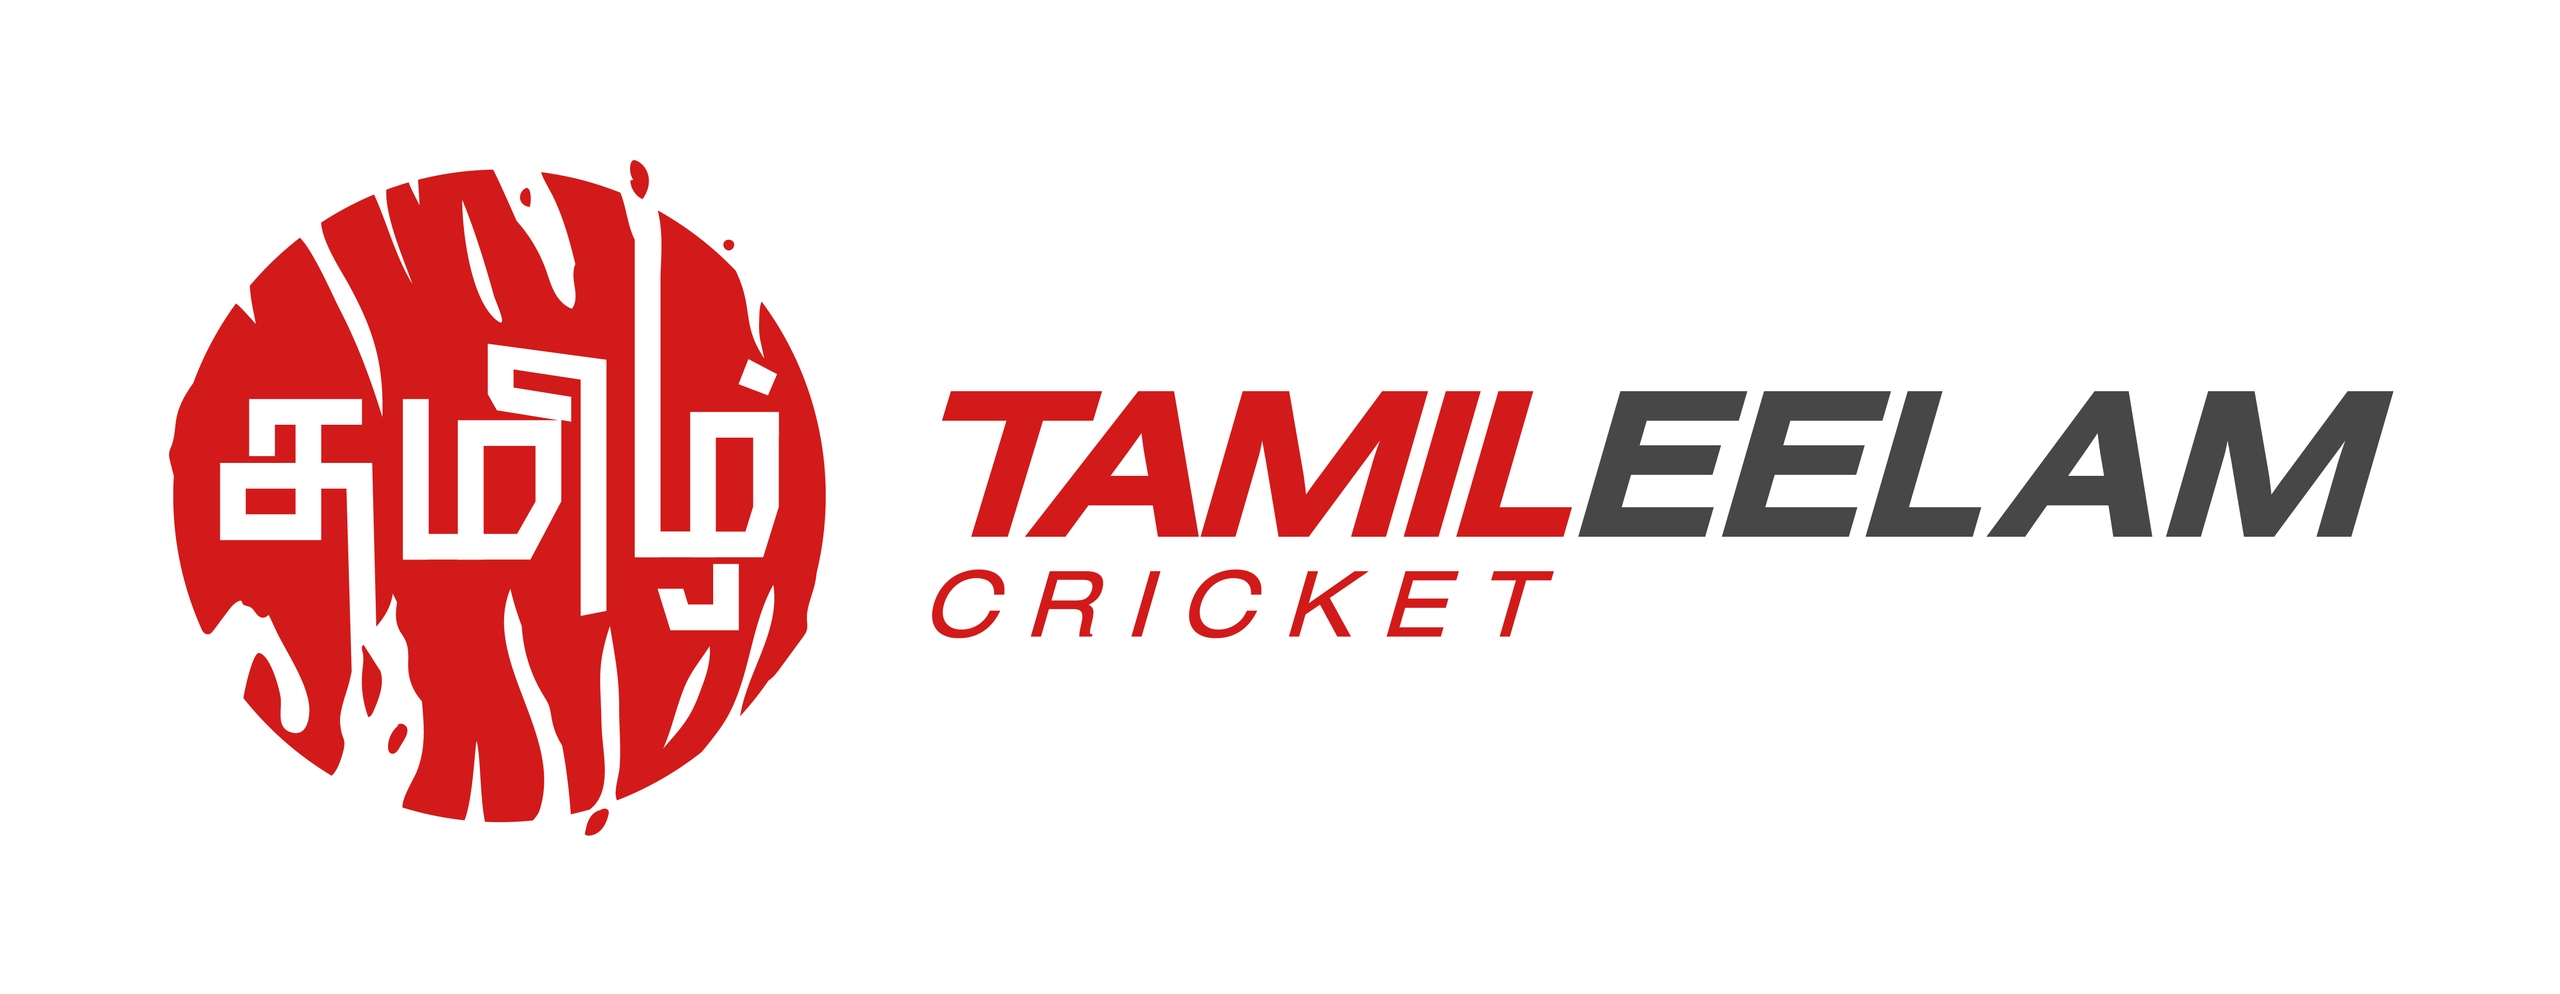 Tamil Eelam Cricket (@tamileelamcricket) Cover Image